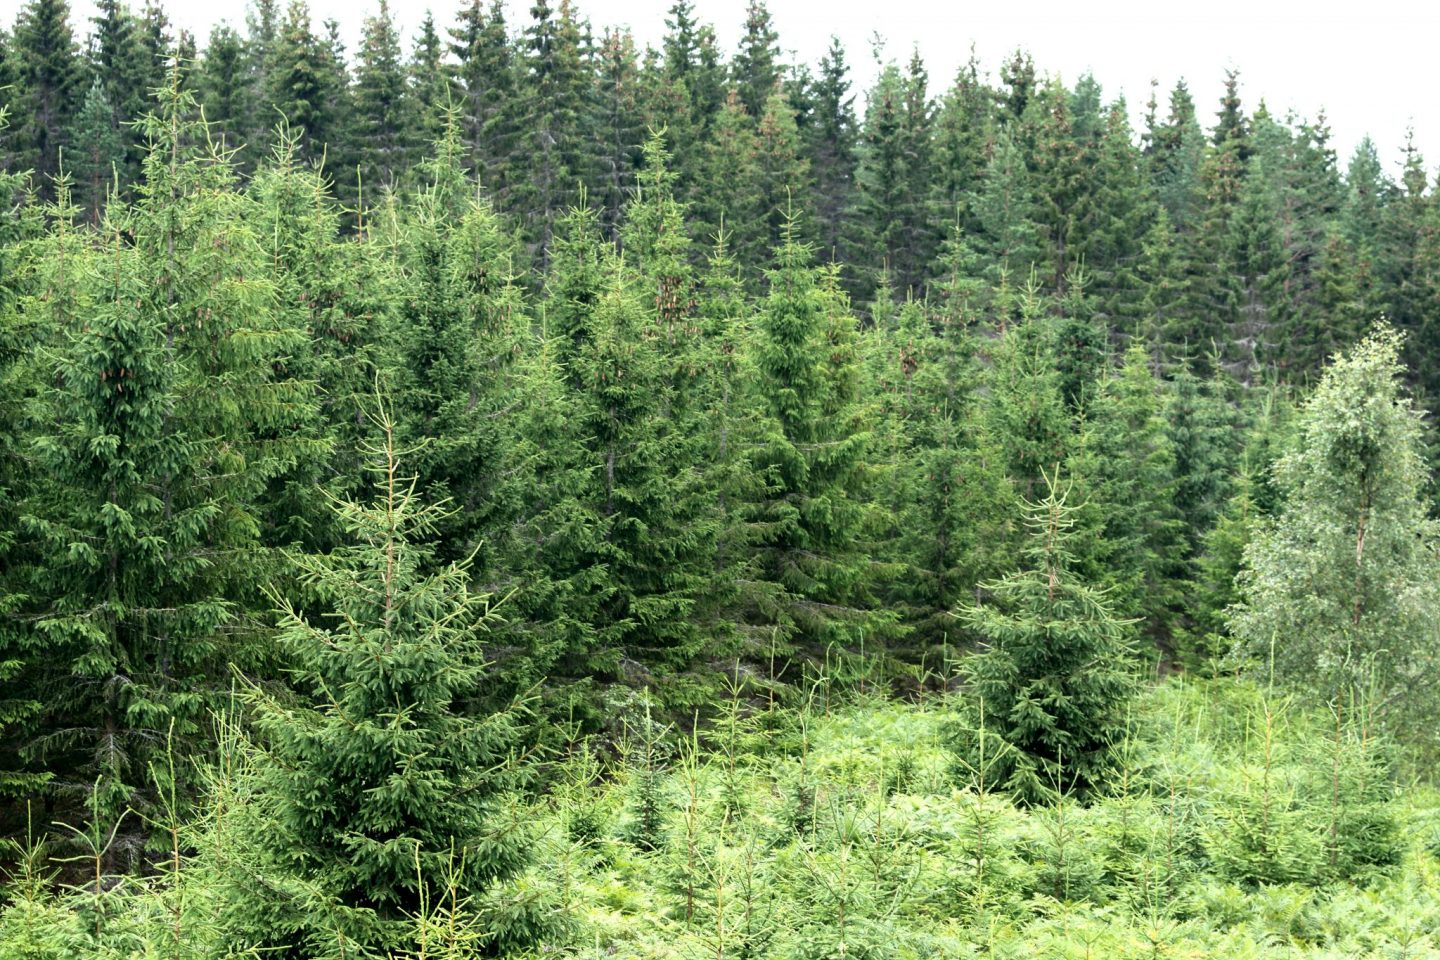 Does the carbon sink have a financial value?